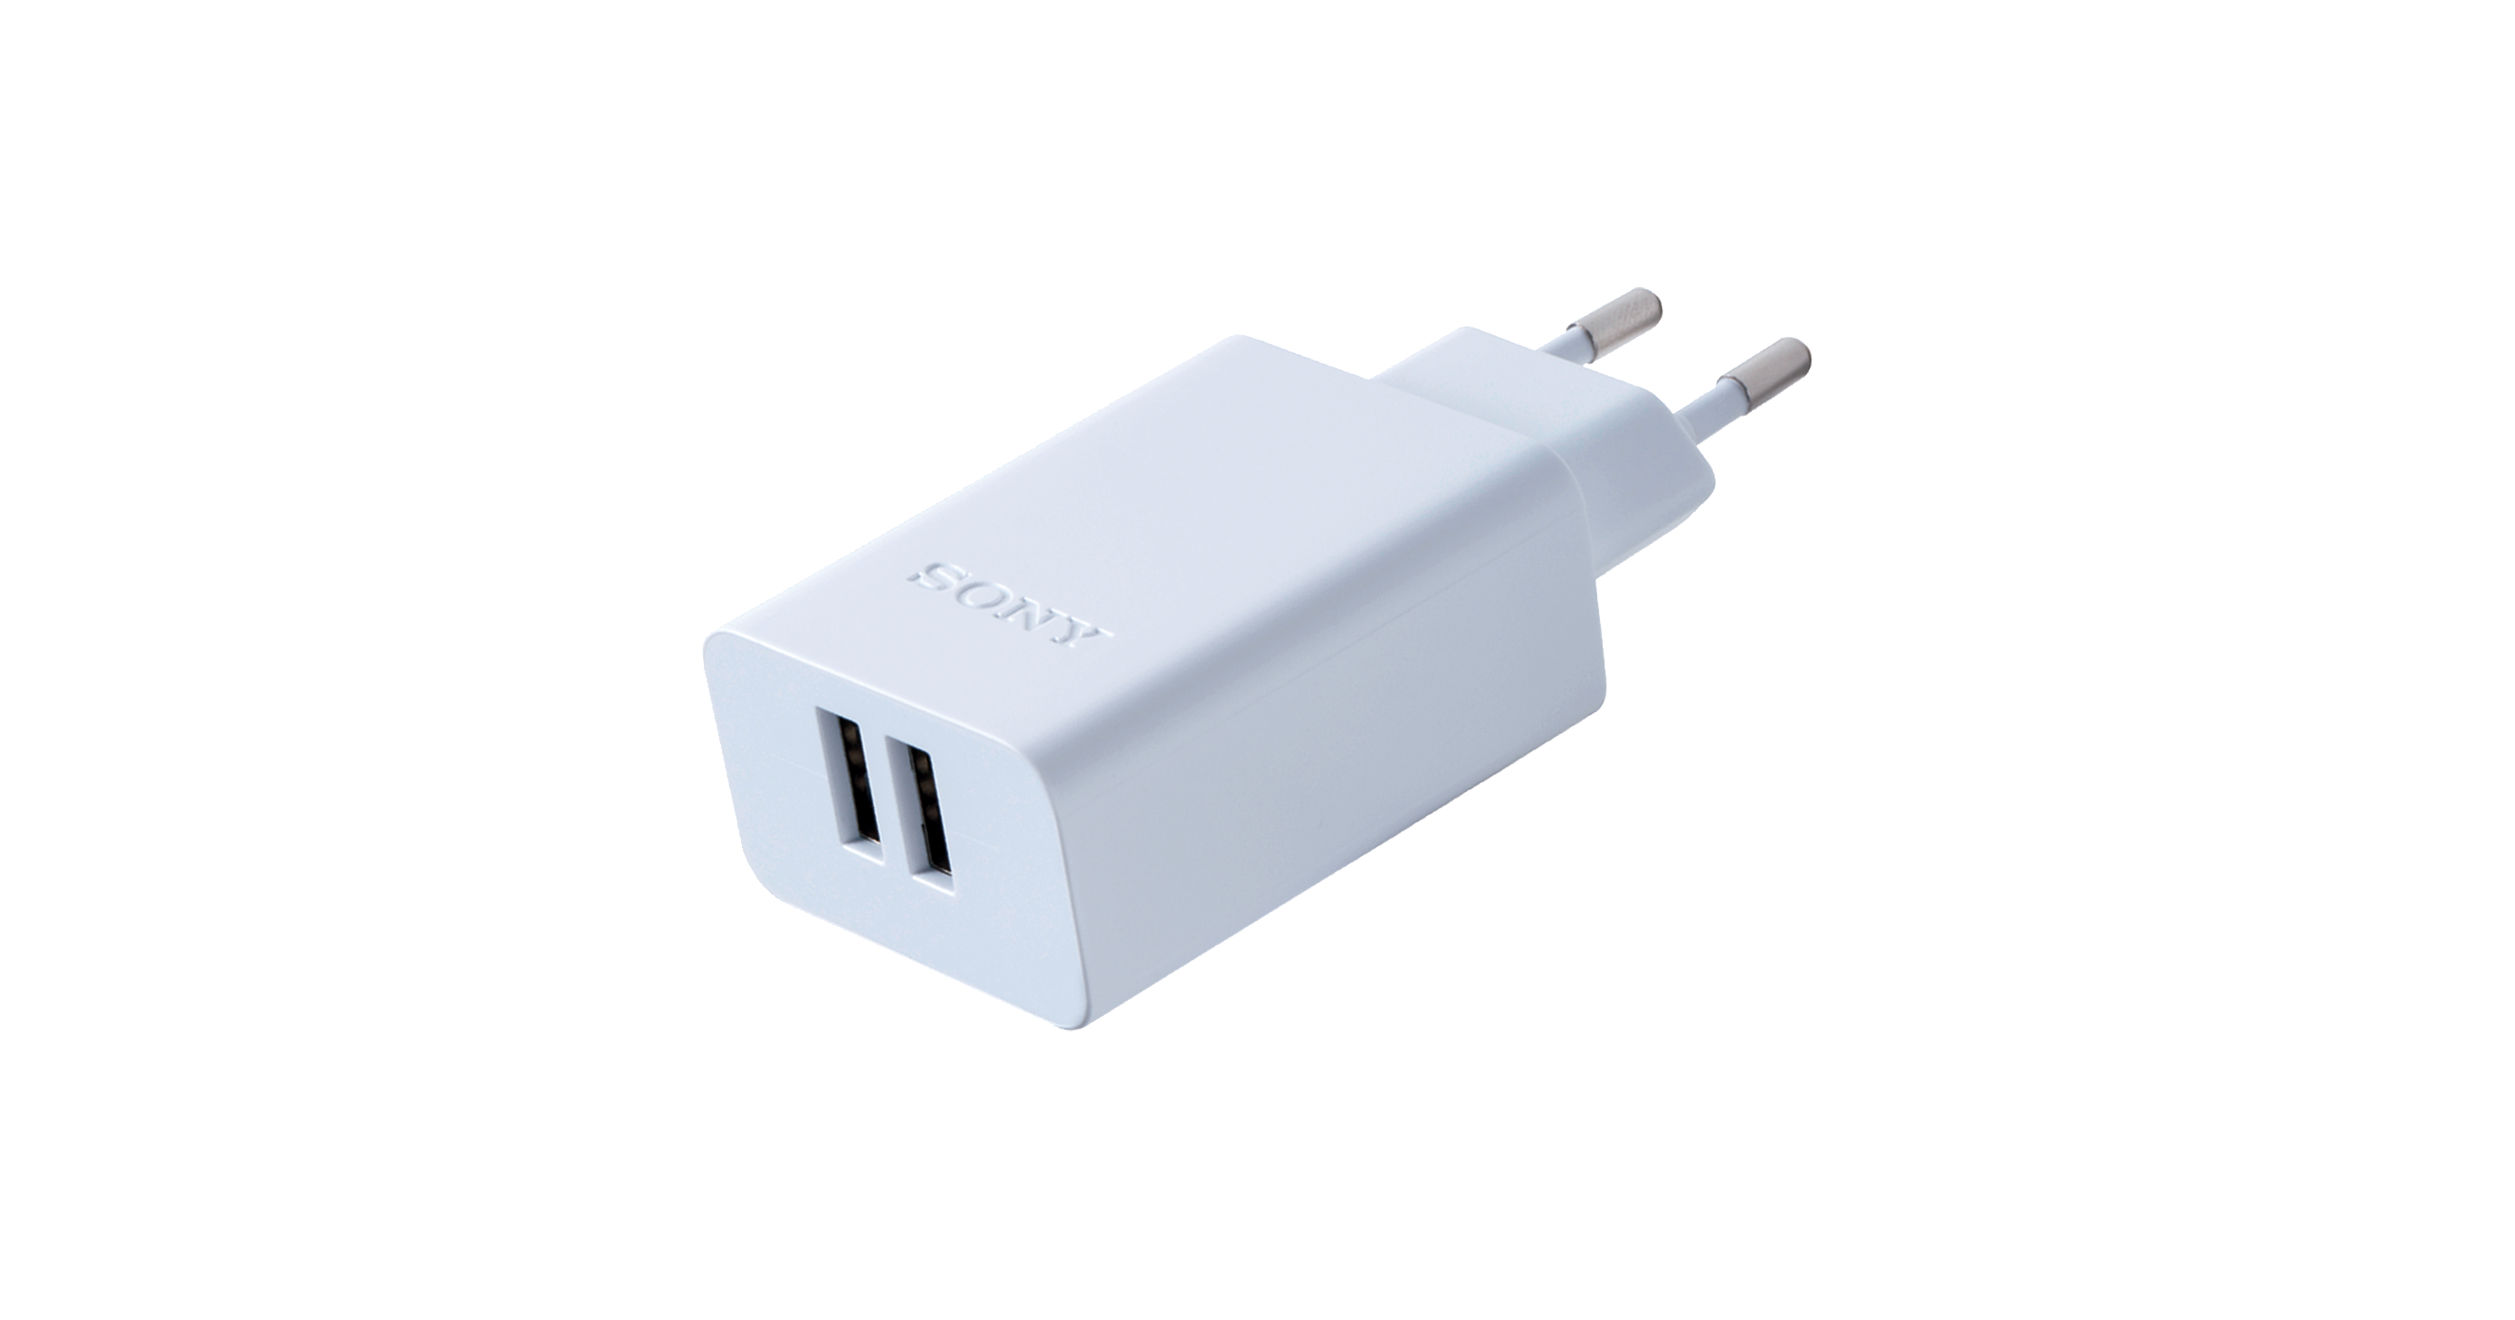 CP-AD2M2 USB AC adaptor with two ports